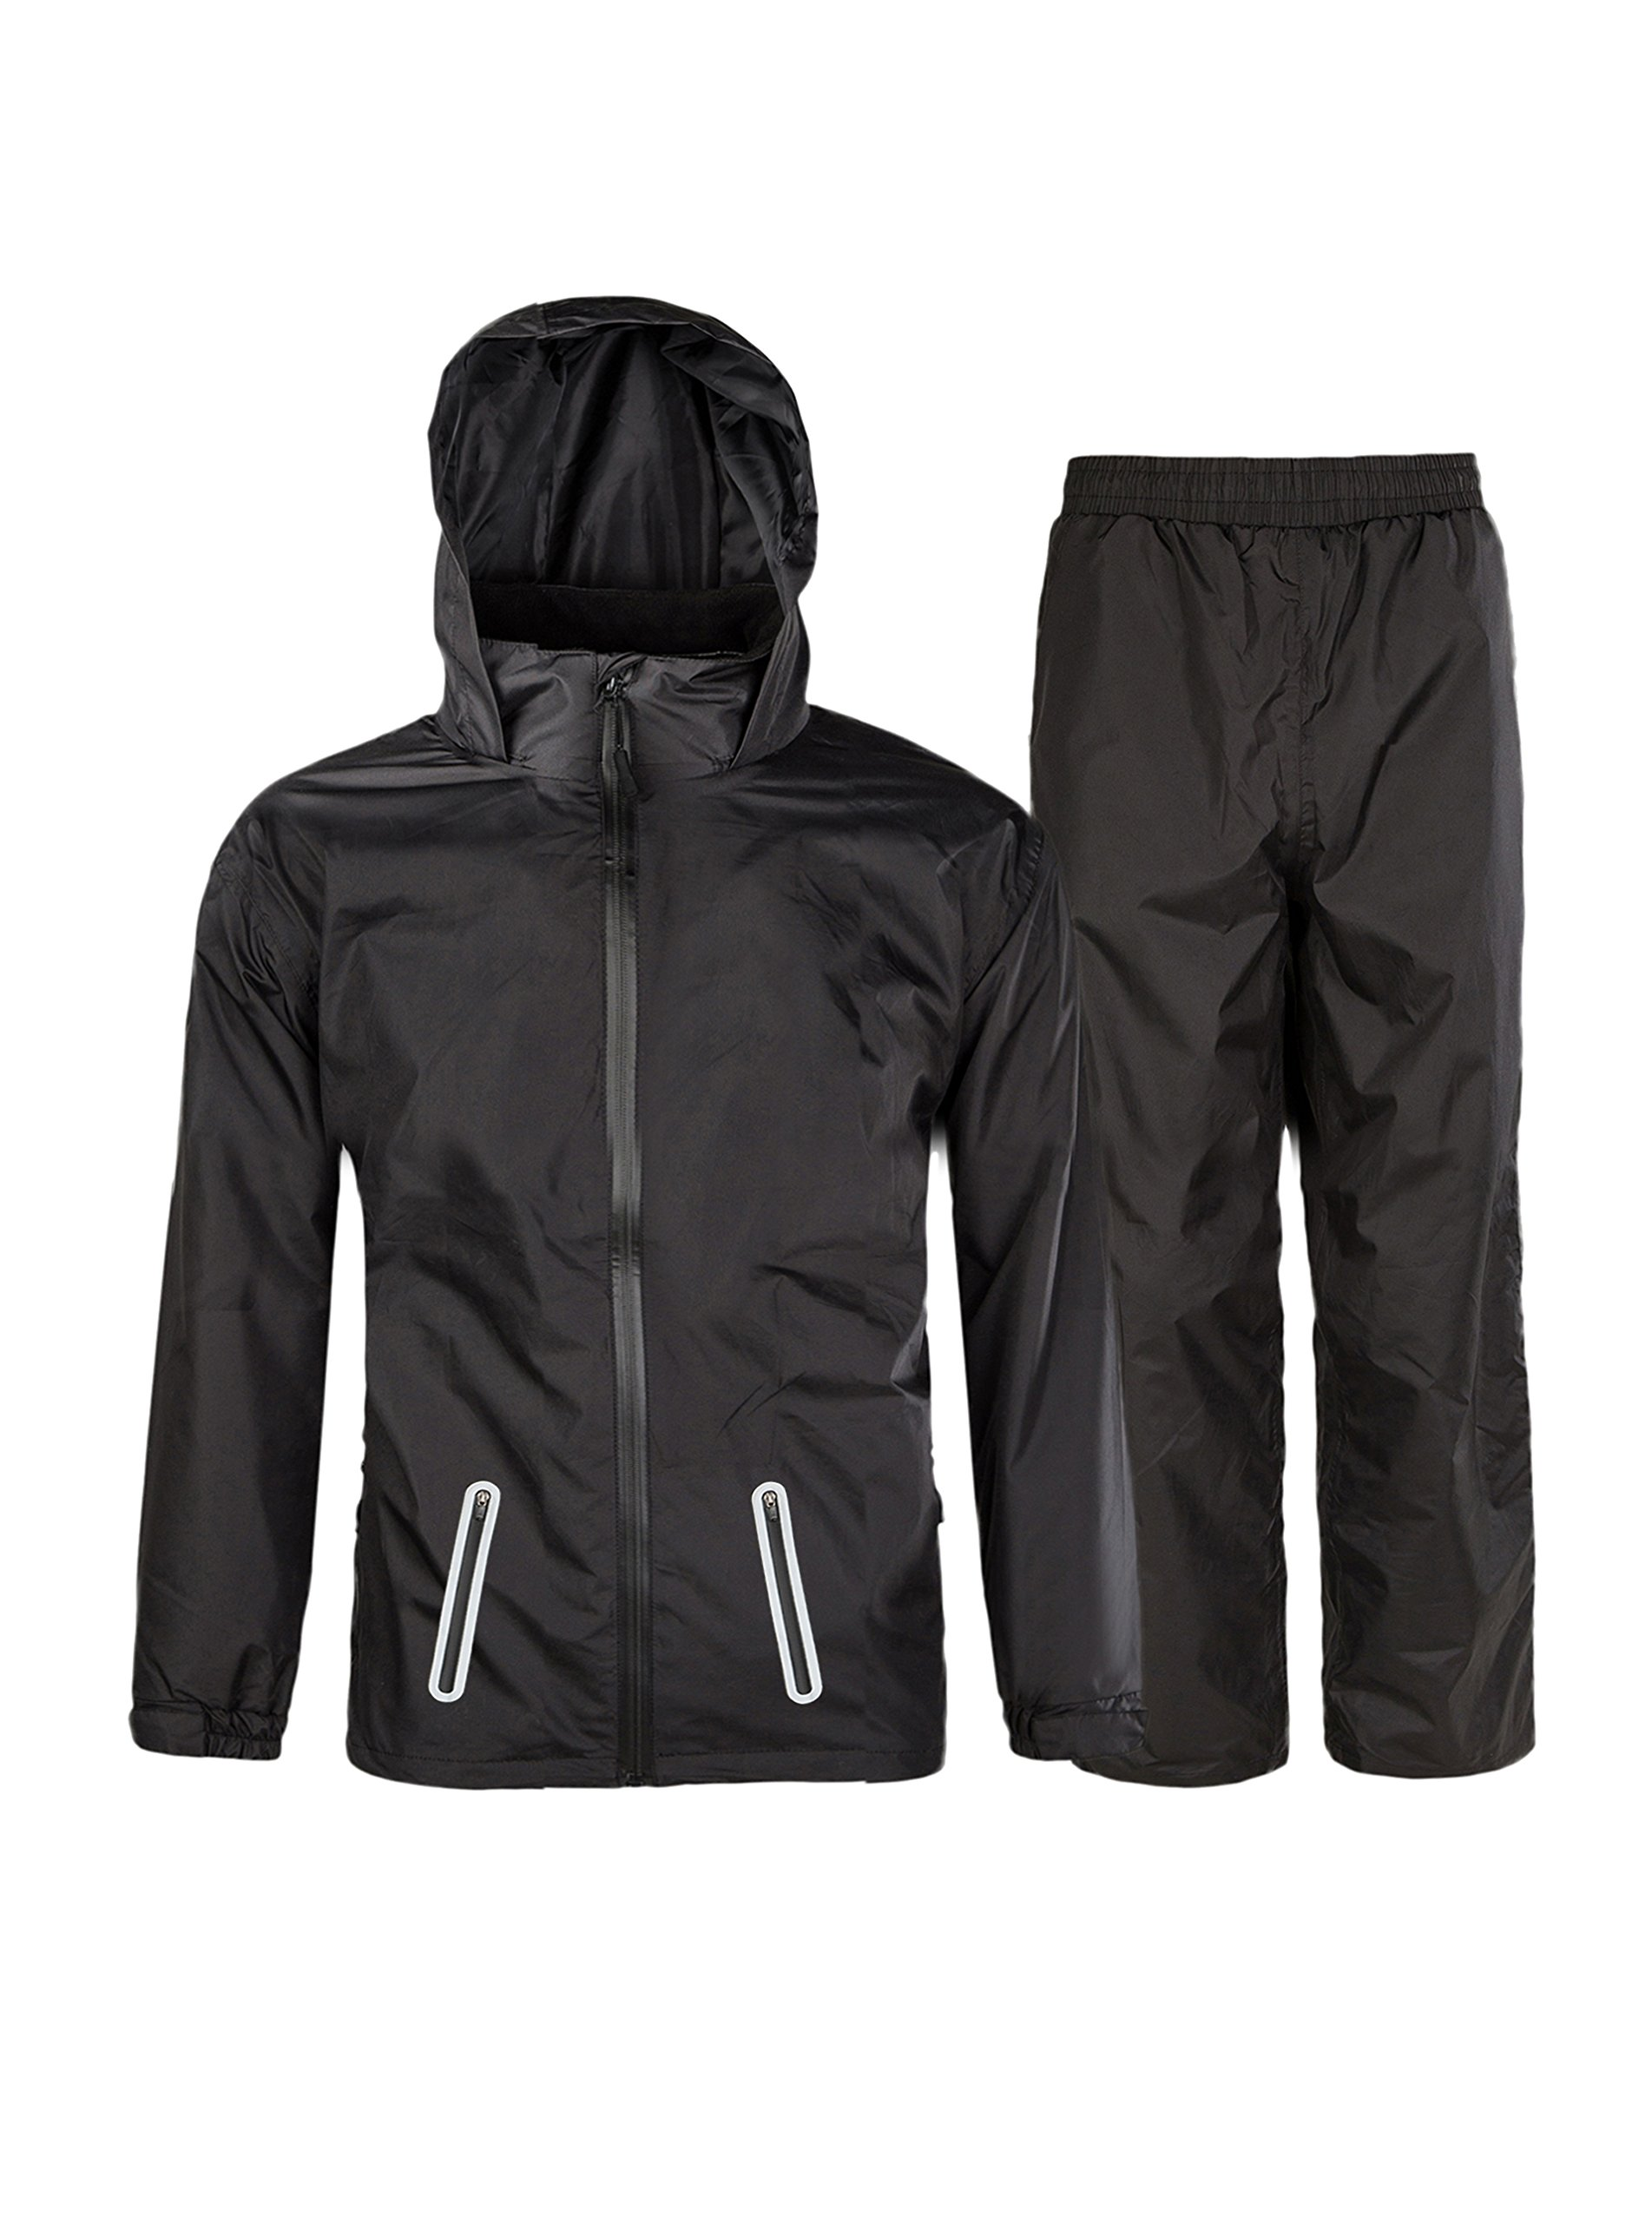 SWISSWELL Hooded Rain Suit for Kids Black Size 10